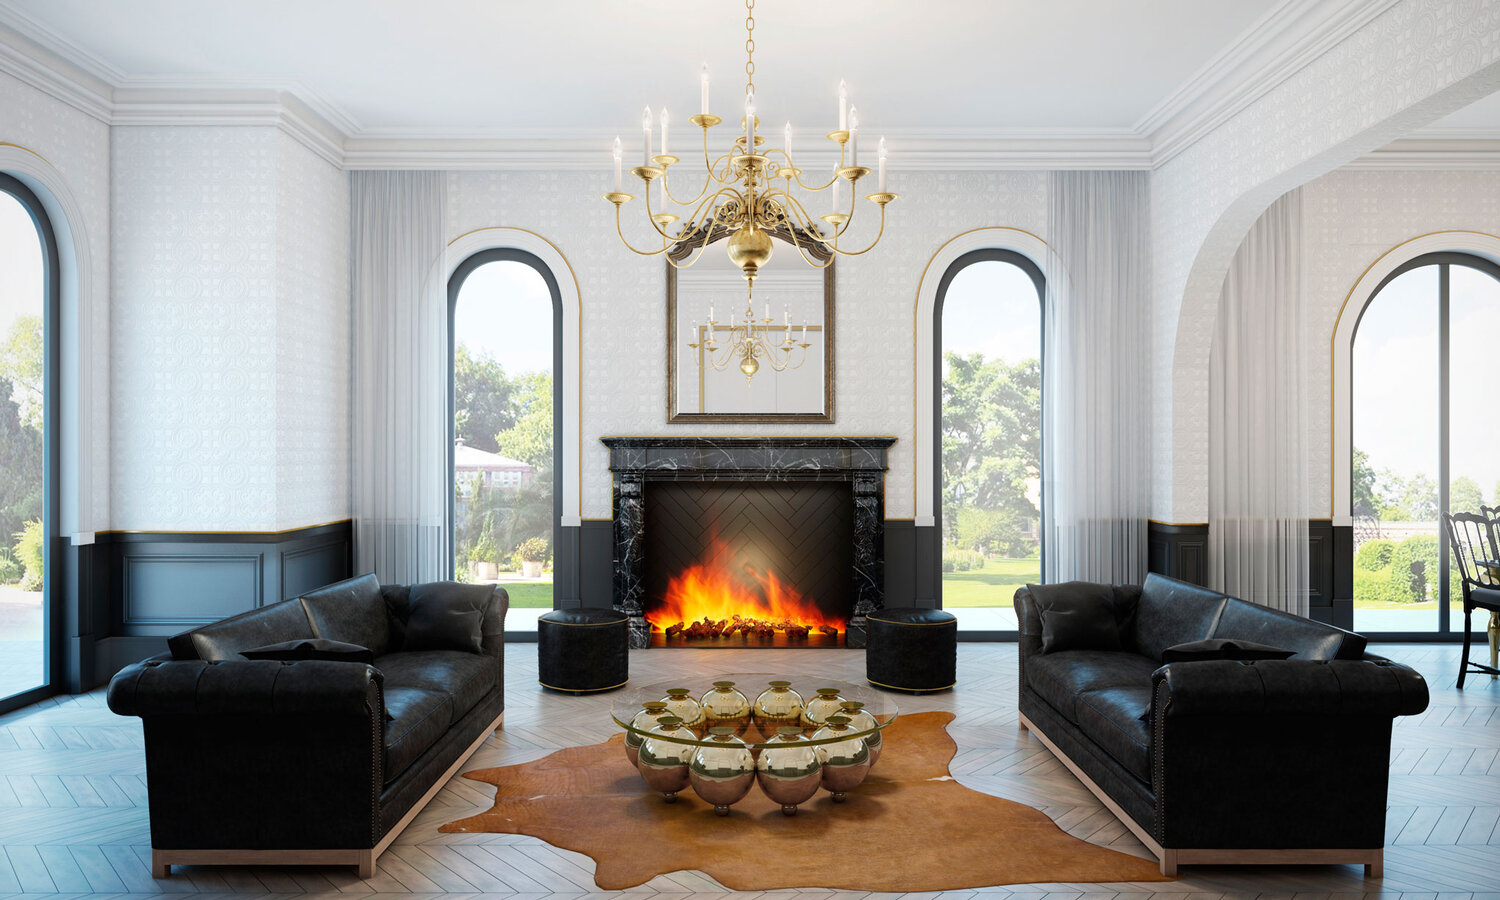 STUDIOMINT-Will-Stock-You-Up-On-Fireplace-Idea